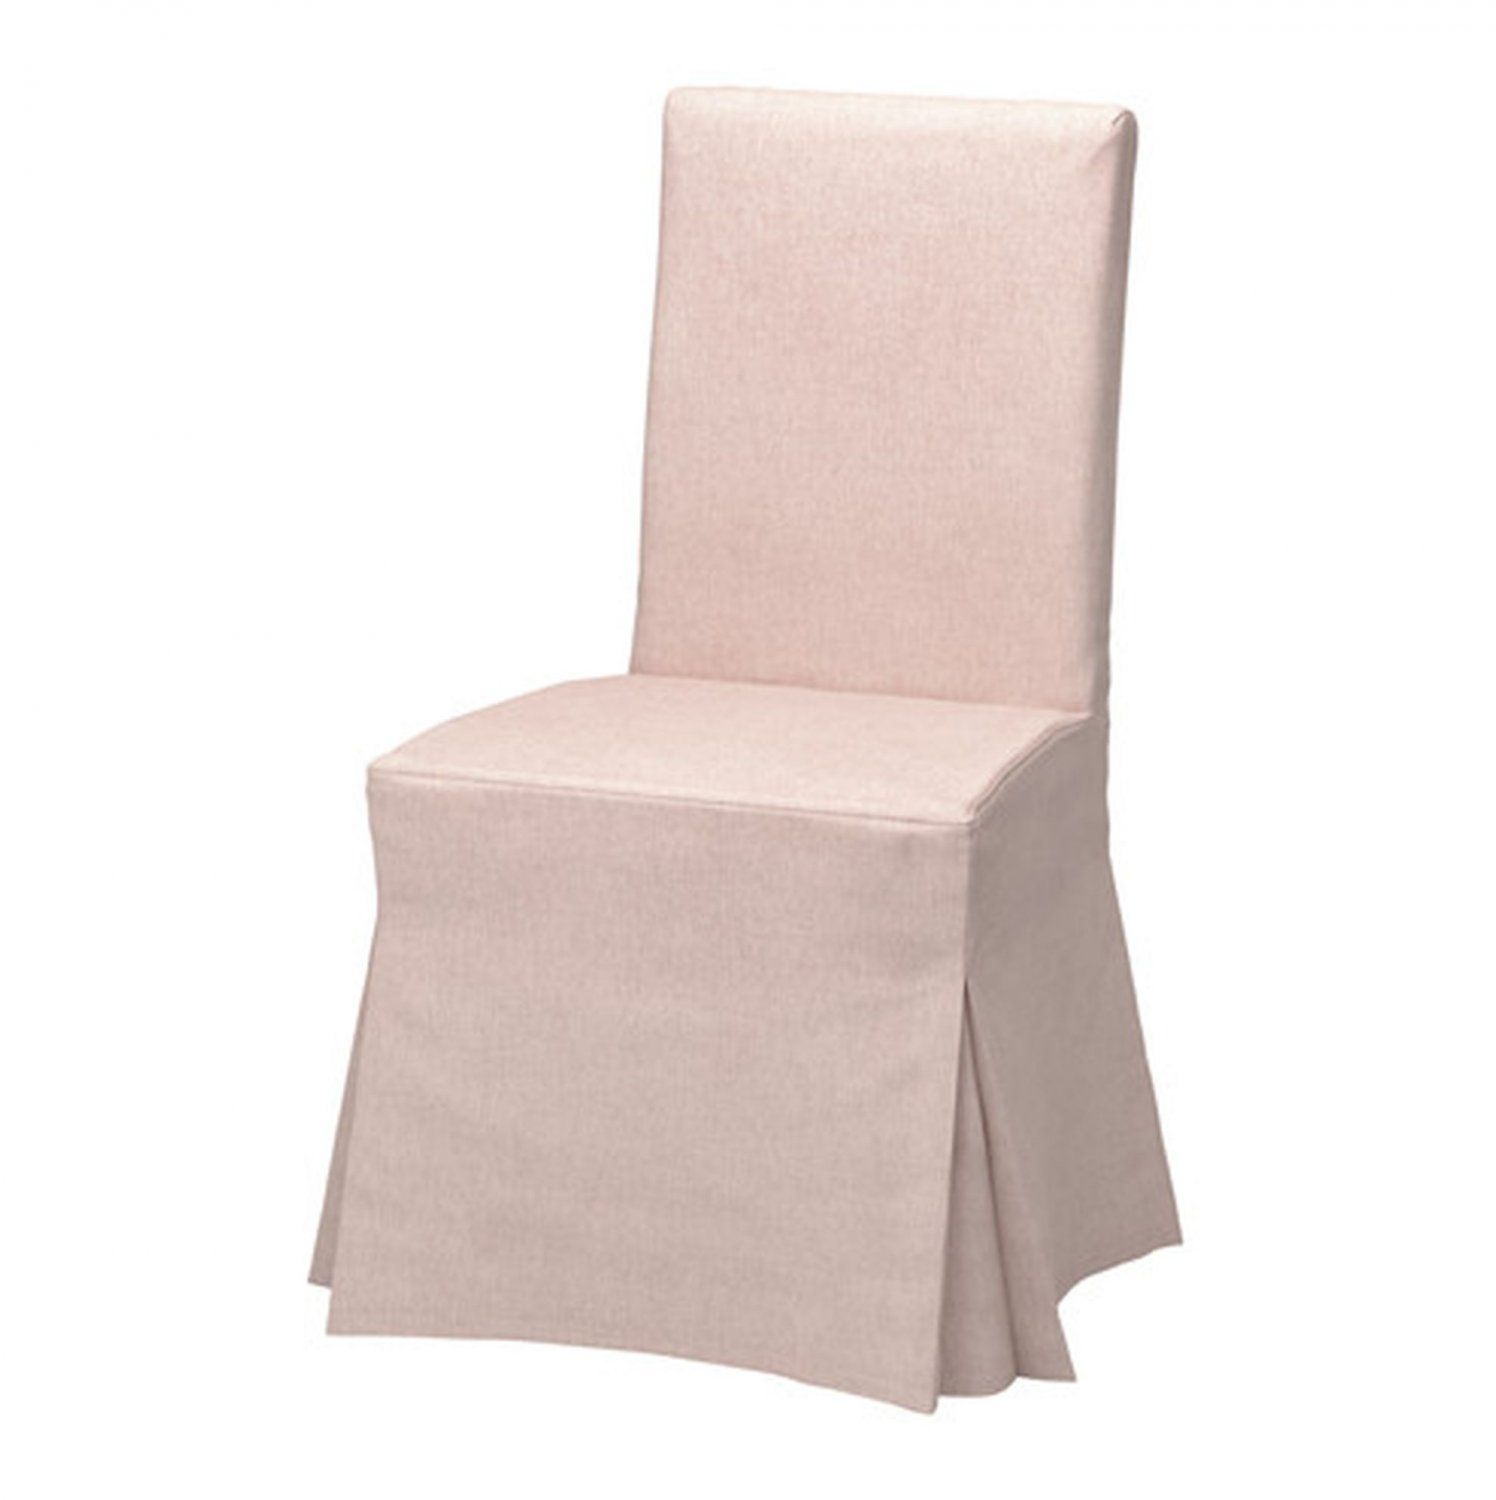 Prime Ikea Henriksdal Chair Slipcover Cover Skirted Long Gunnared Pabps2019 Chair Design Images Pabps2019Com